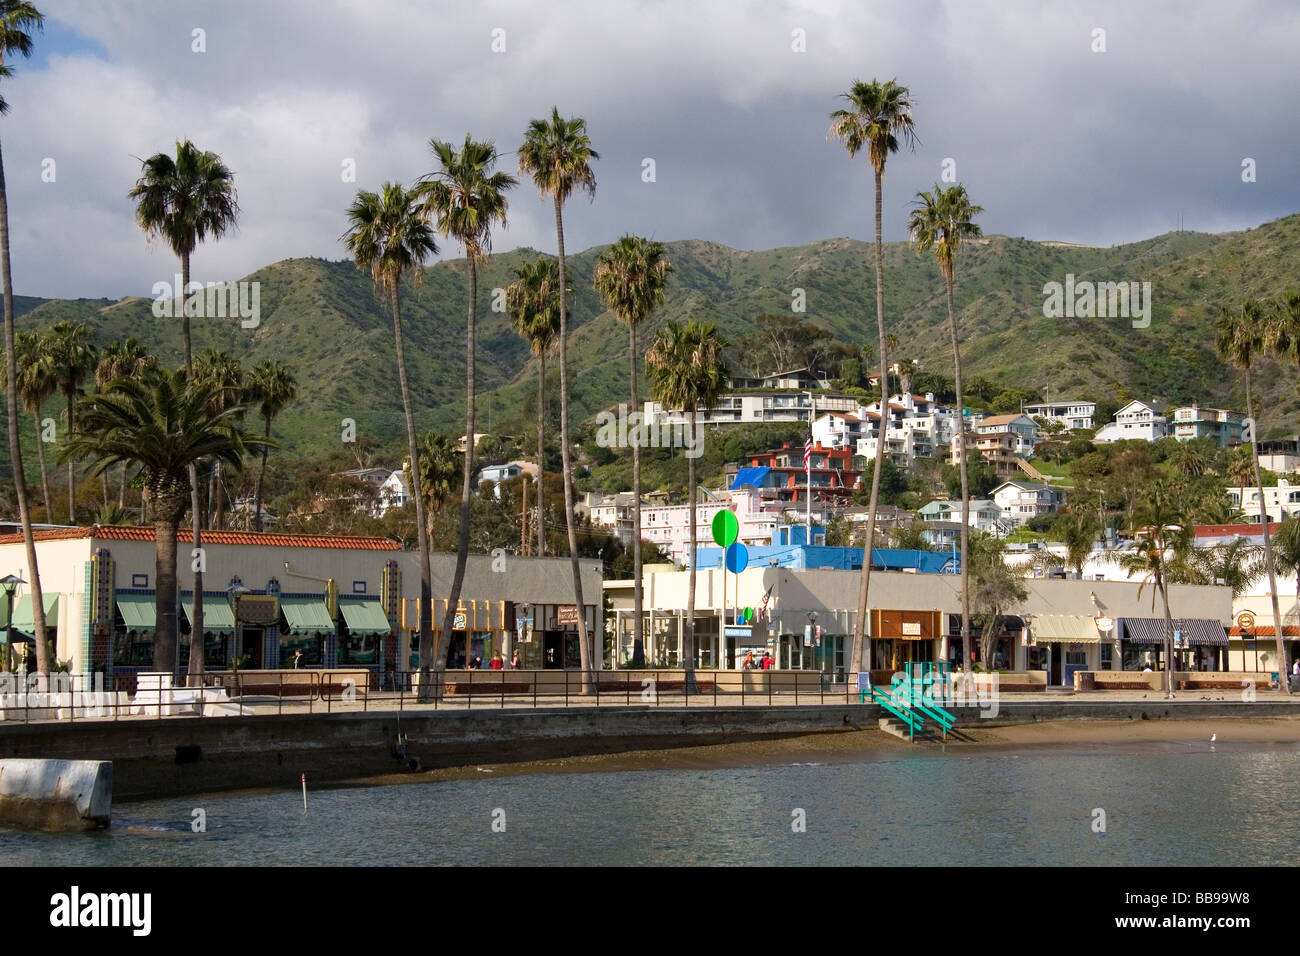 Downtown Avalon on Catalina Island California USA - Stock Image